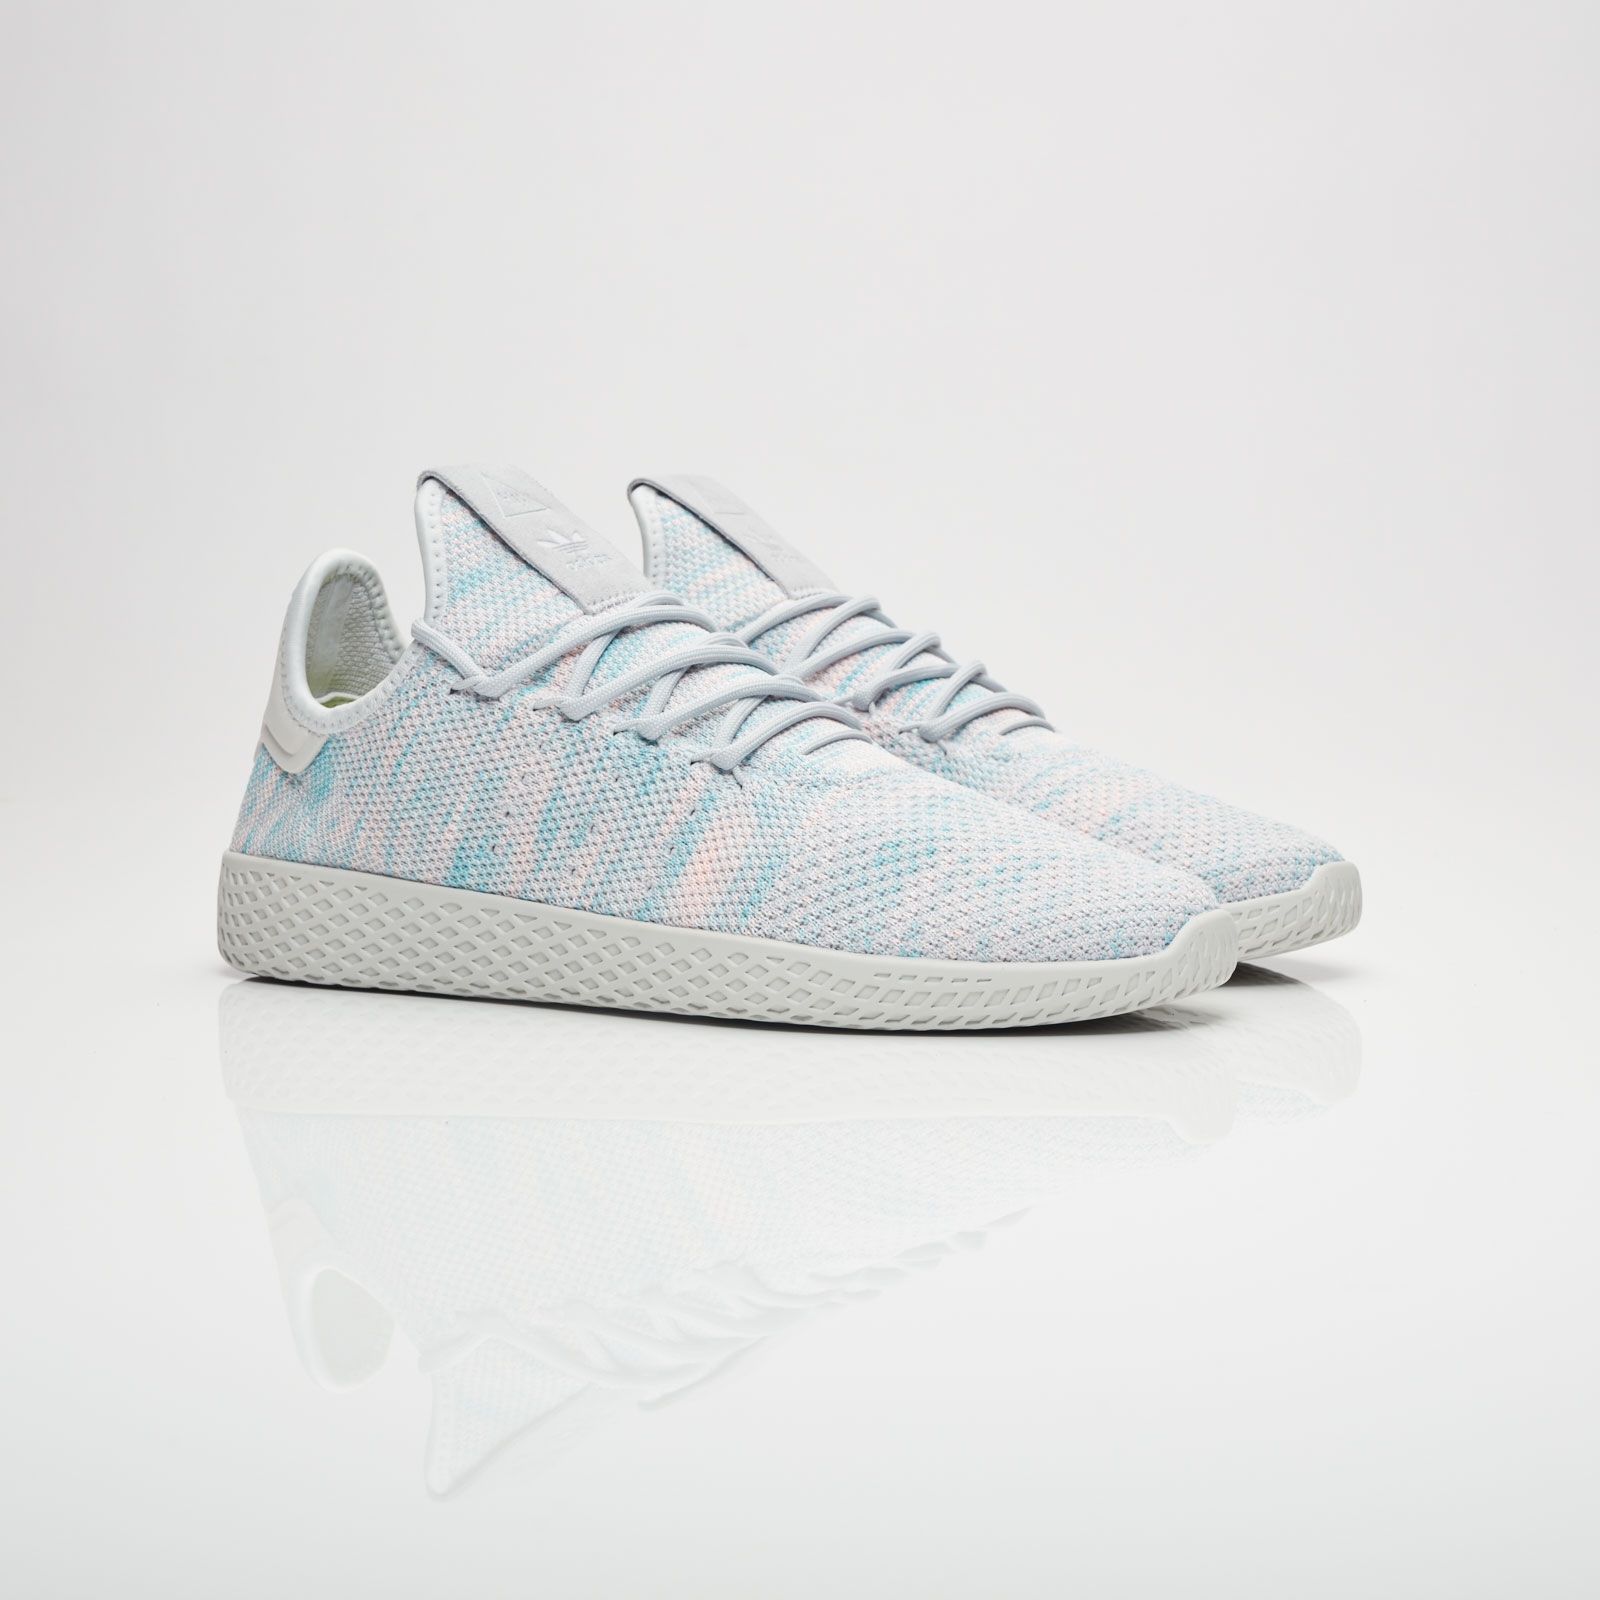 adidas Pharrell Williams Tennis HU - By2671 - Sneakersnstuff ... 4fa60c75ef6